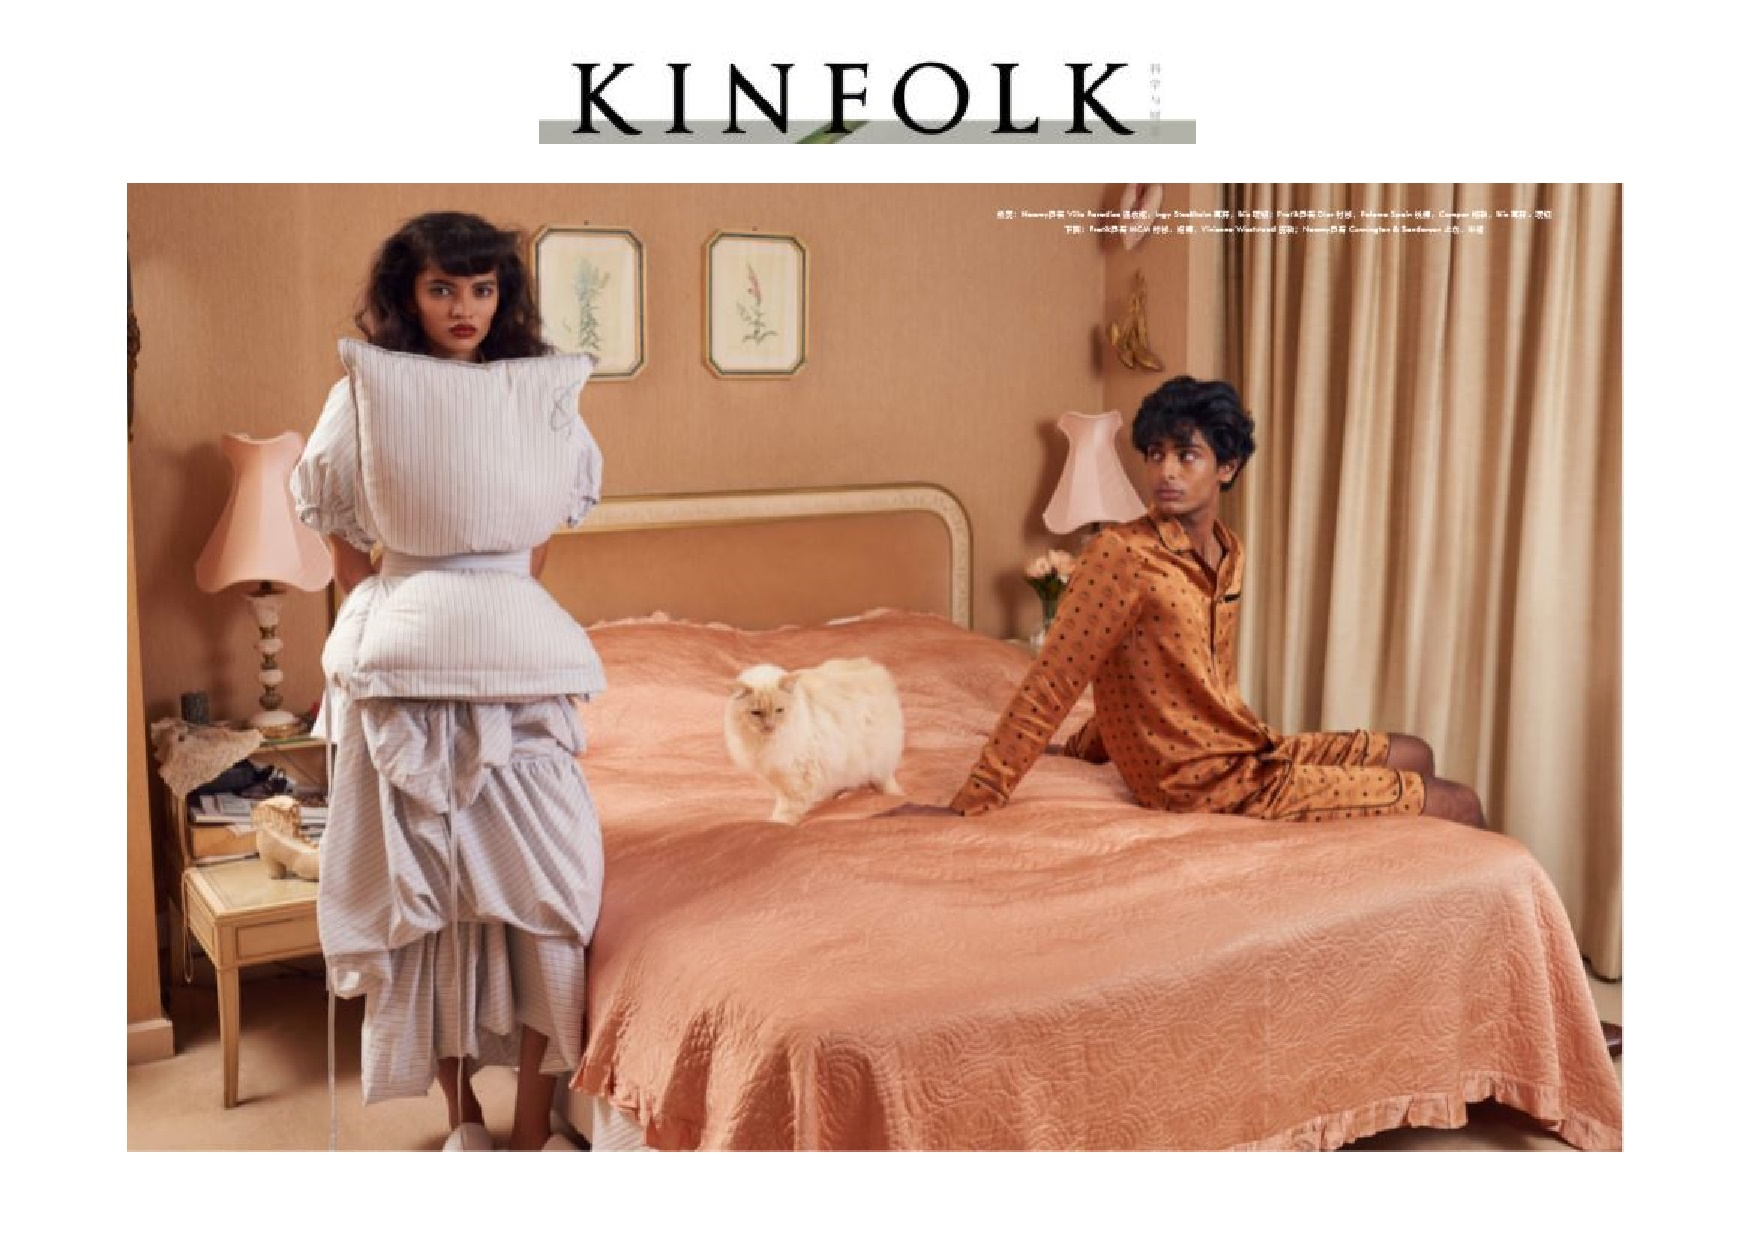 kinfolk_china_pillow_dress_cunnington_an